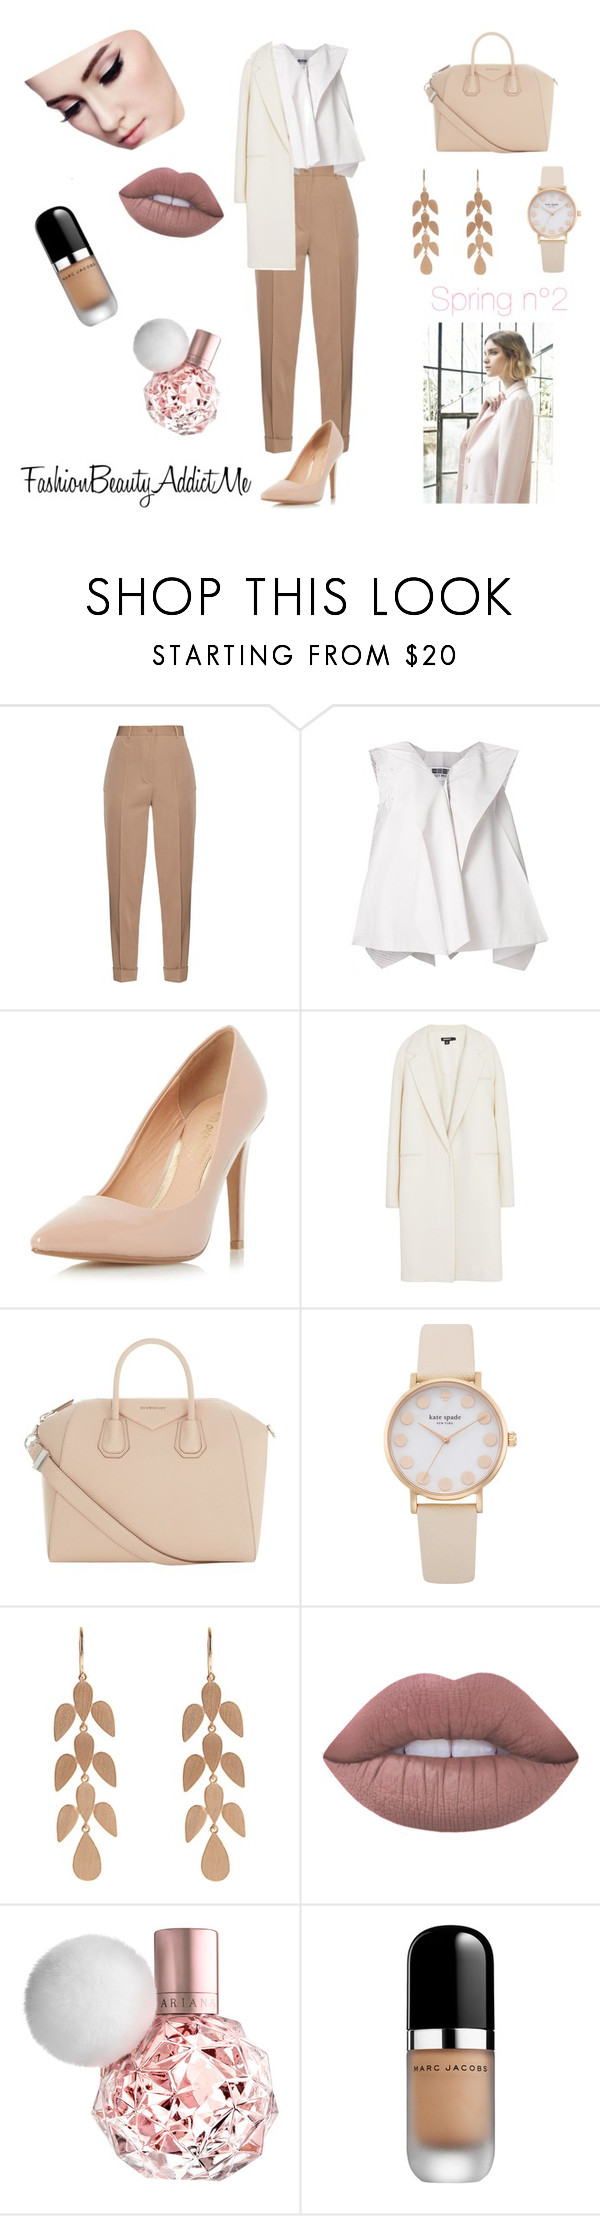 """""""Spring n°2"""" by chachalapin on Polyvore featuring mode, Bottega Veneta, Issey Miyake, Dorothy Perkins, DKNY, Givenchy, Irene Neuwirth, Nuevo, Lime Crime et Marc Jacobs"""